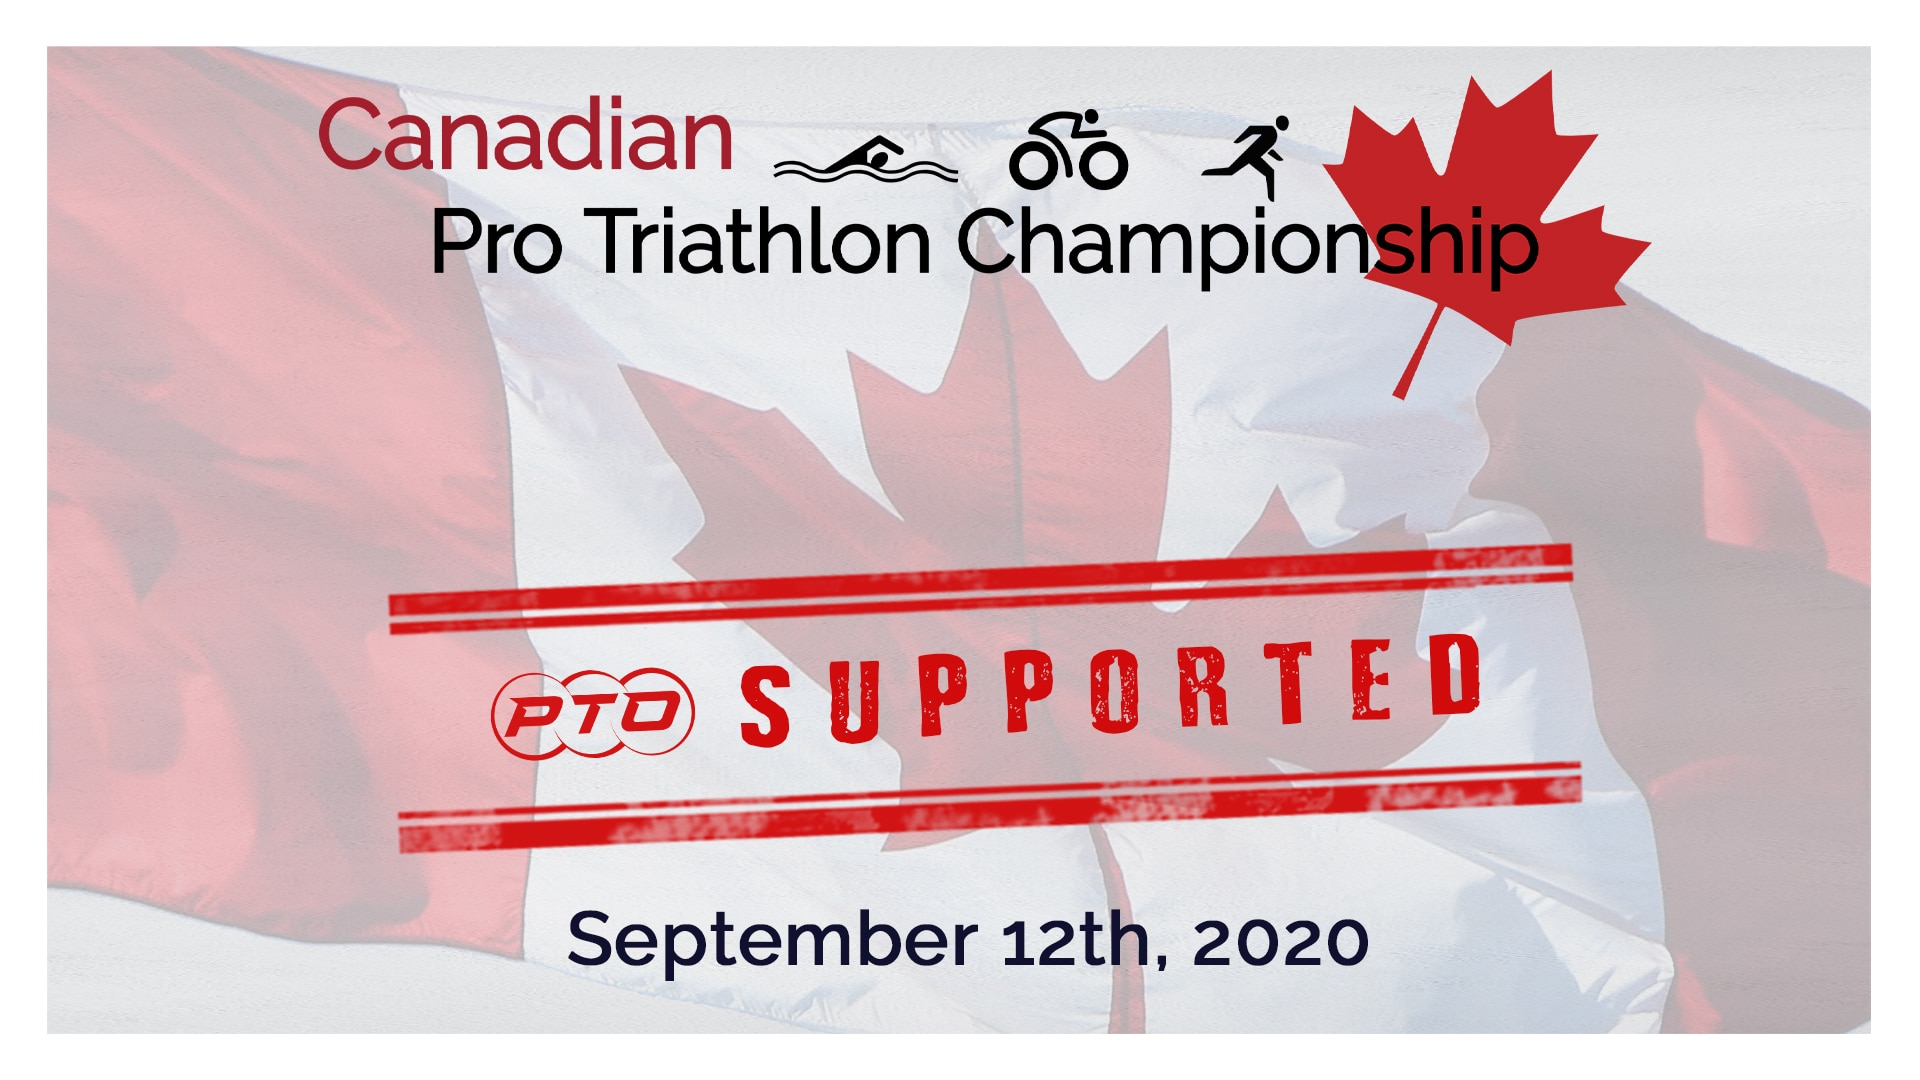 PROFESSIONAL TRIATHLETES ORGANISATION ANNOUNCES C$20,000 PRIZE PURSE FOR THE CANADIAN PRO TRIATHLON CHAMPIONSHIP